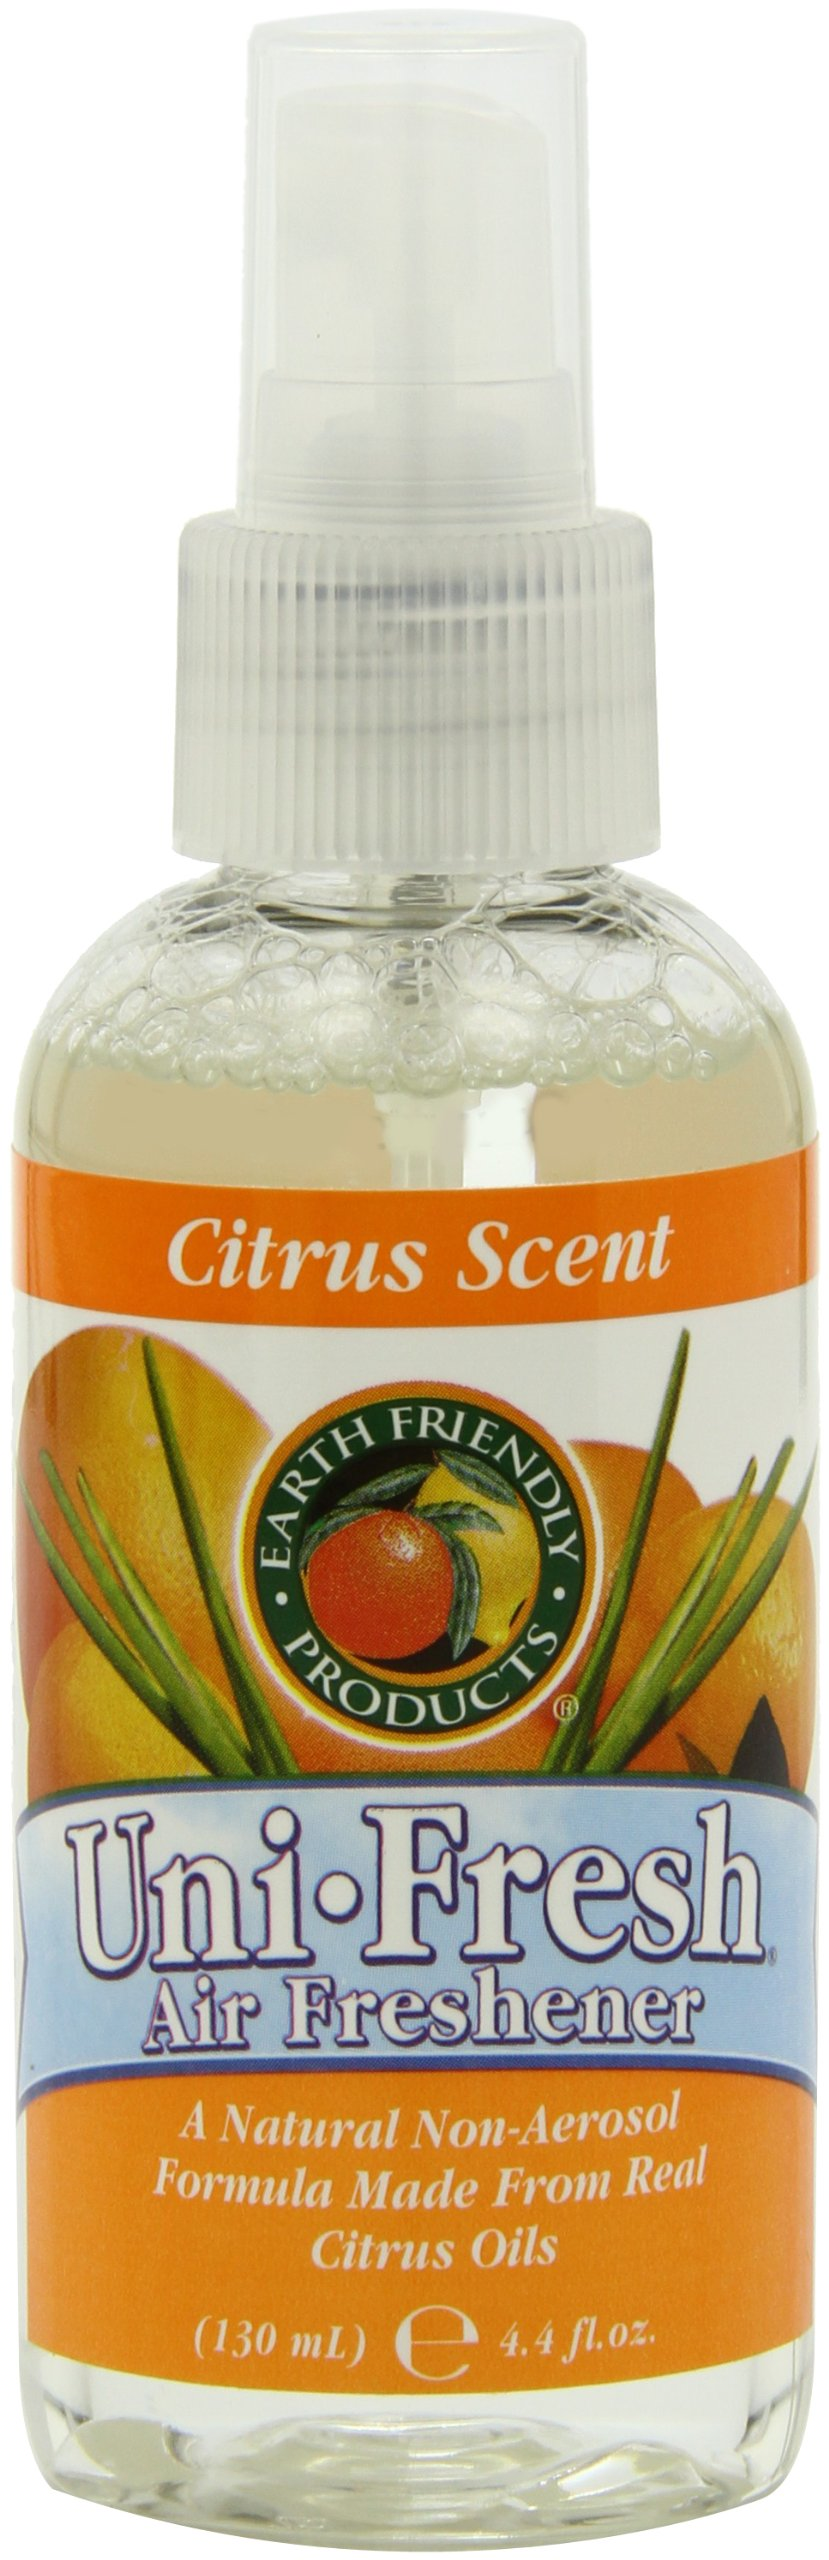 Earth Friendly Products Uni-Fresh Natural Air Refresher, Non-Aerosol, Citrus - 4.4 Ounces (Pack of 12) by Earth Friendly Products